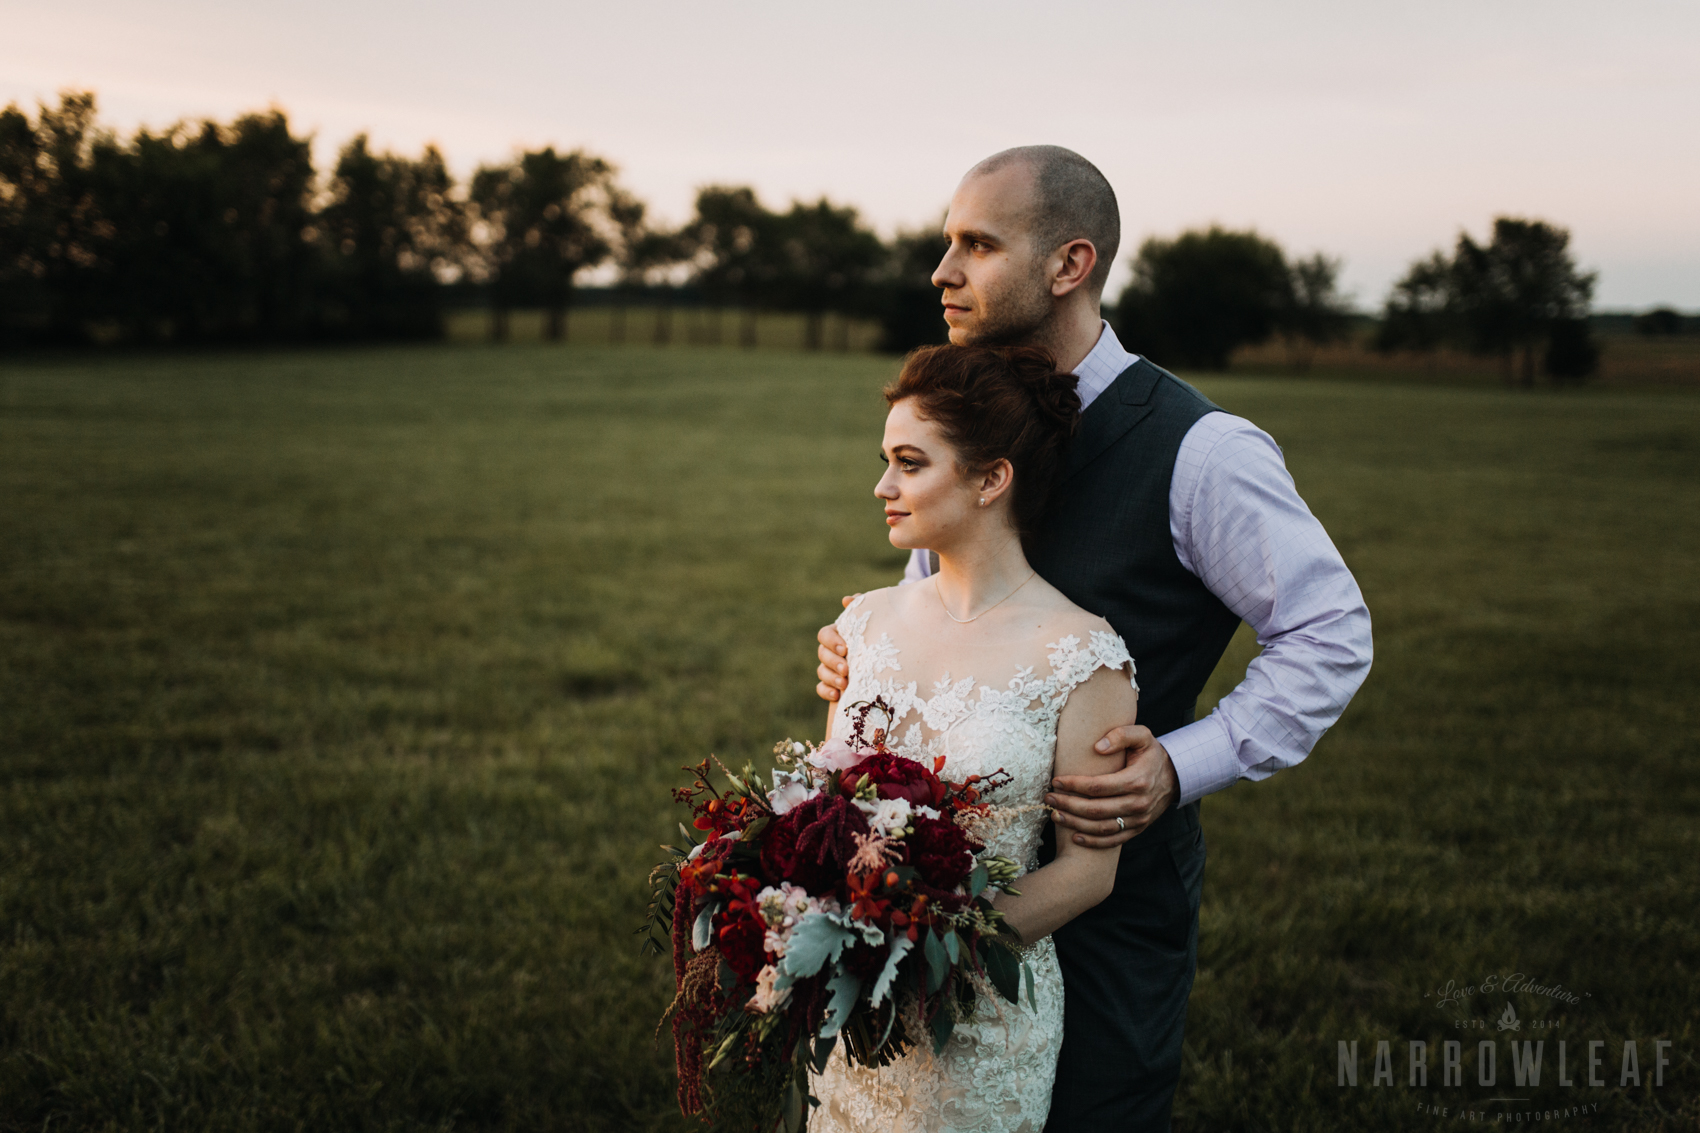 bride-groom-romantic-sunset-photos-rustys-hitching-post-event-center-new-richmond-wi-69.jpg